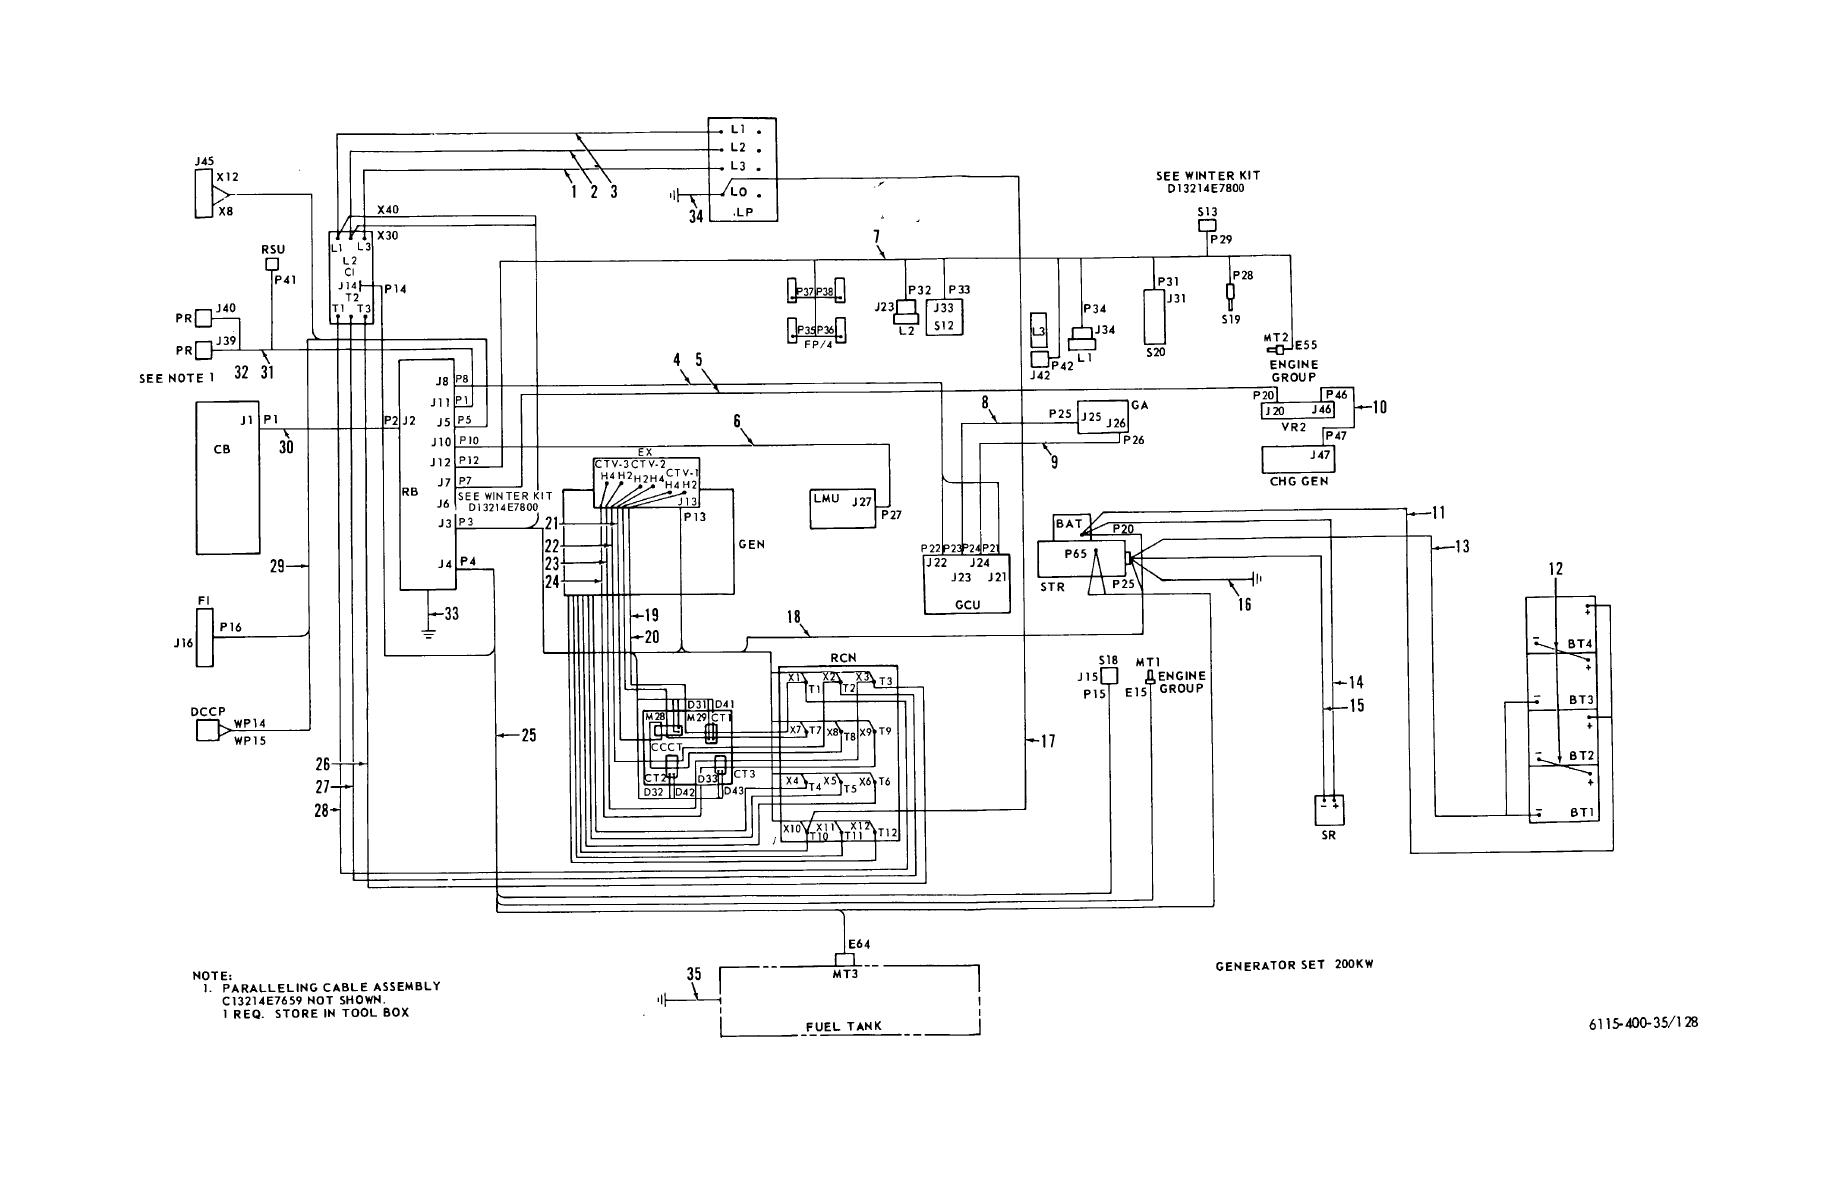 Figure 128. Wiring diagram-interconnecting wiring harness